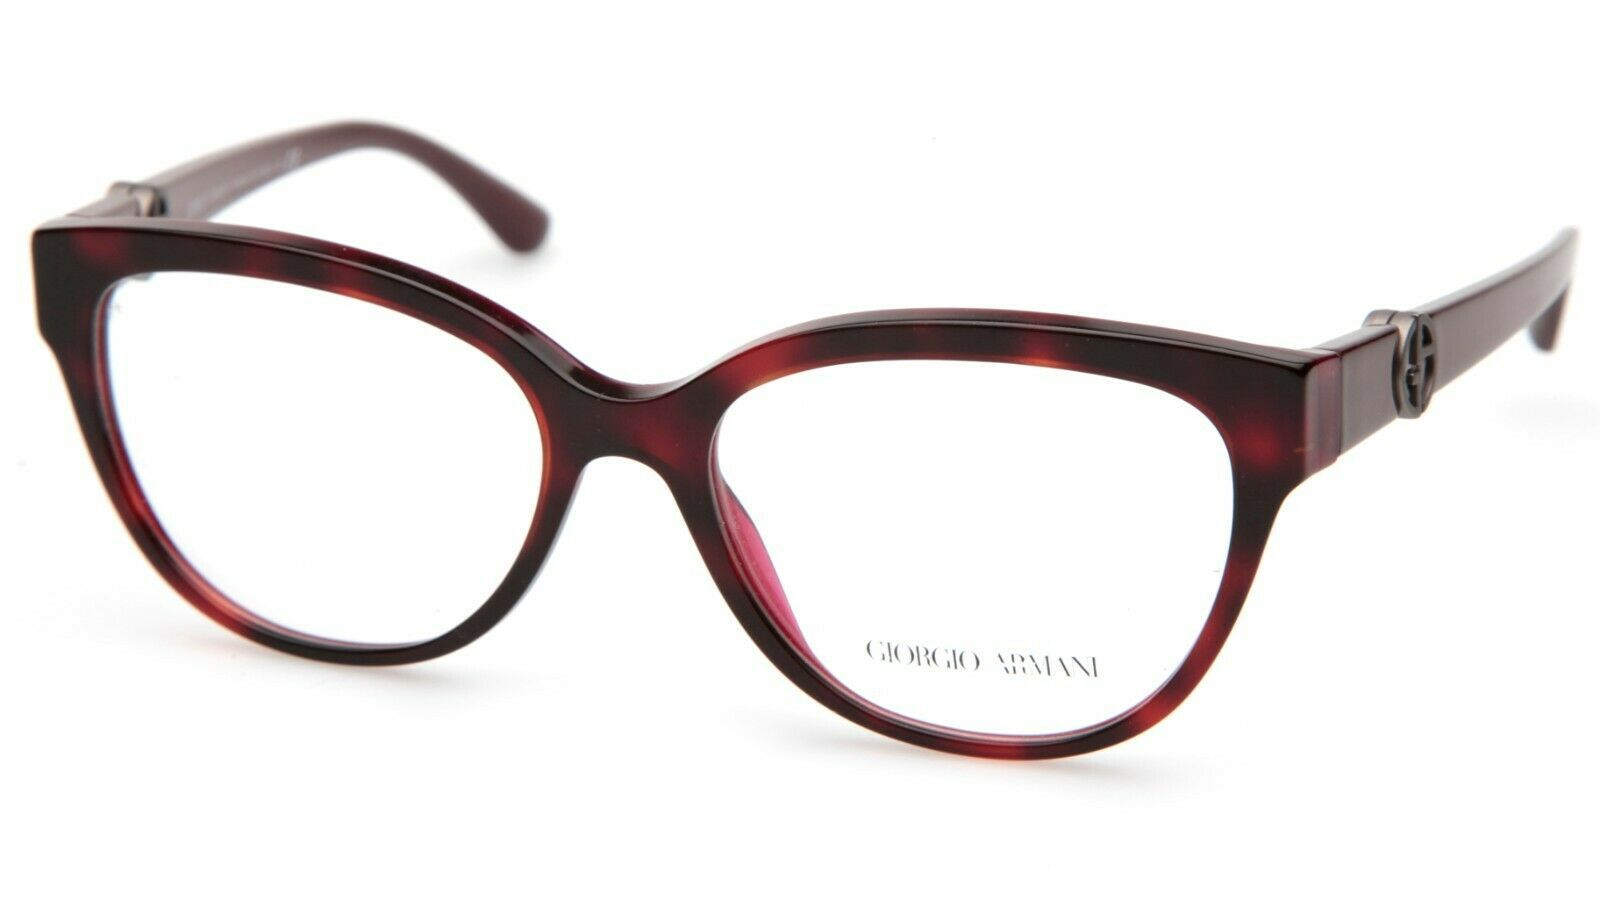 Primary image for New GIORGIO ARMANI AR7079 5421 HAVANA EYEGLASSES FRAME 54-17-140mm B42mm Italy